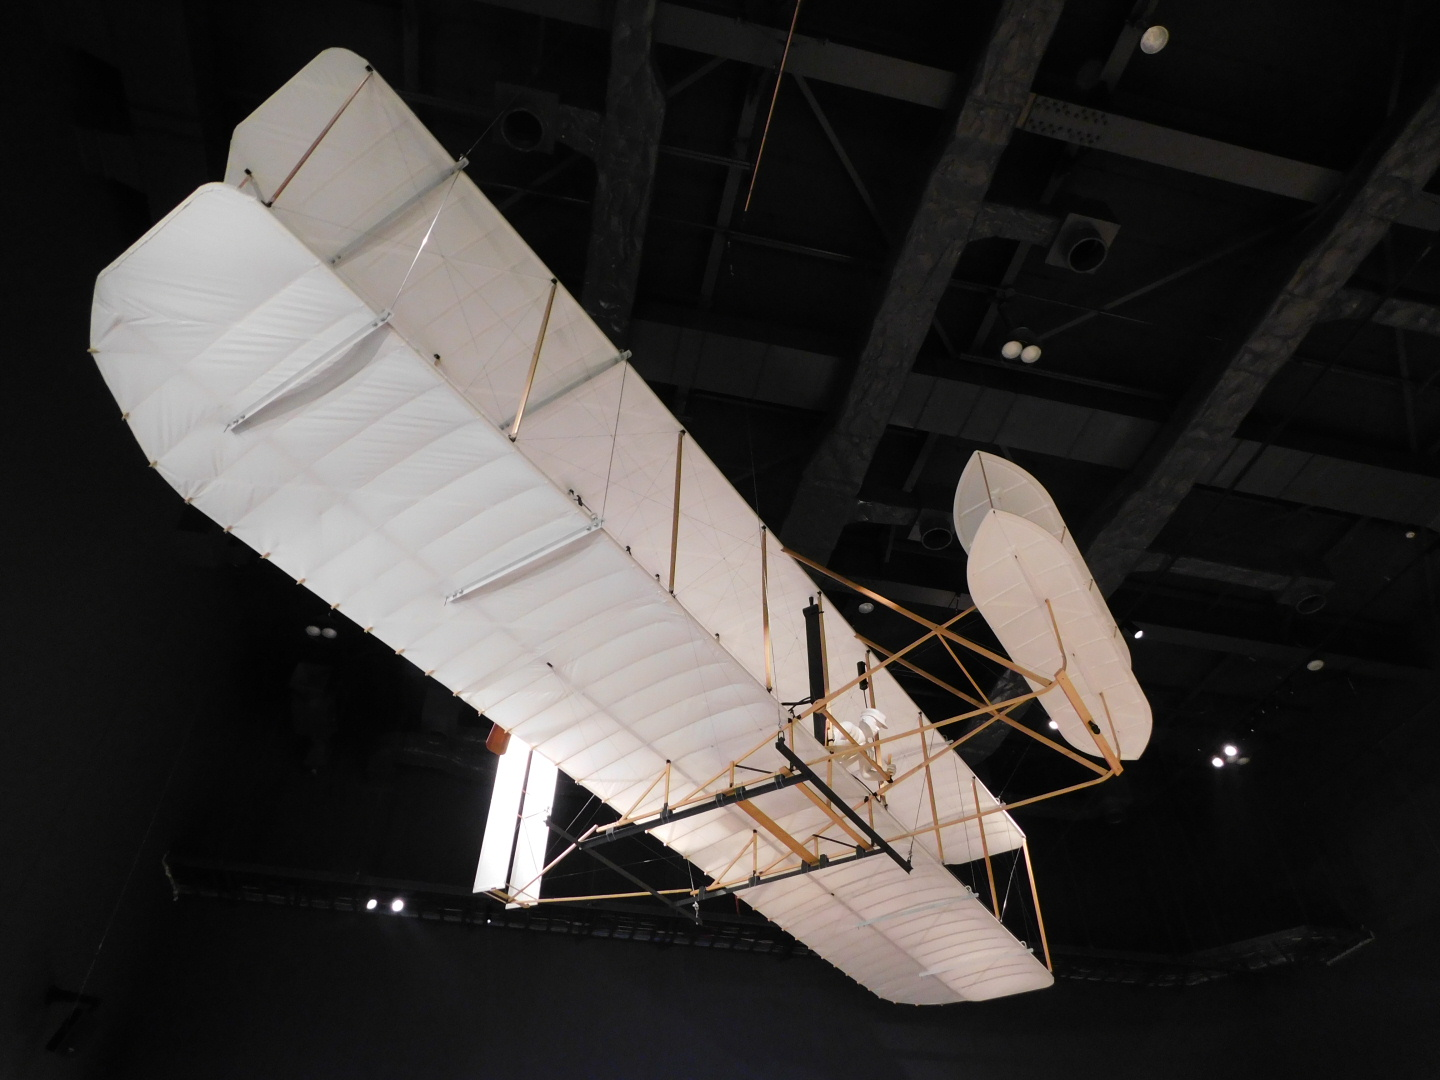 Wright Flyer(1903 Flyer) Mock up